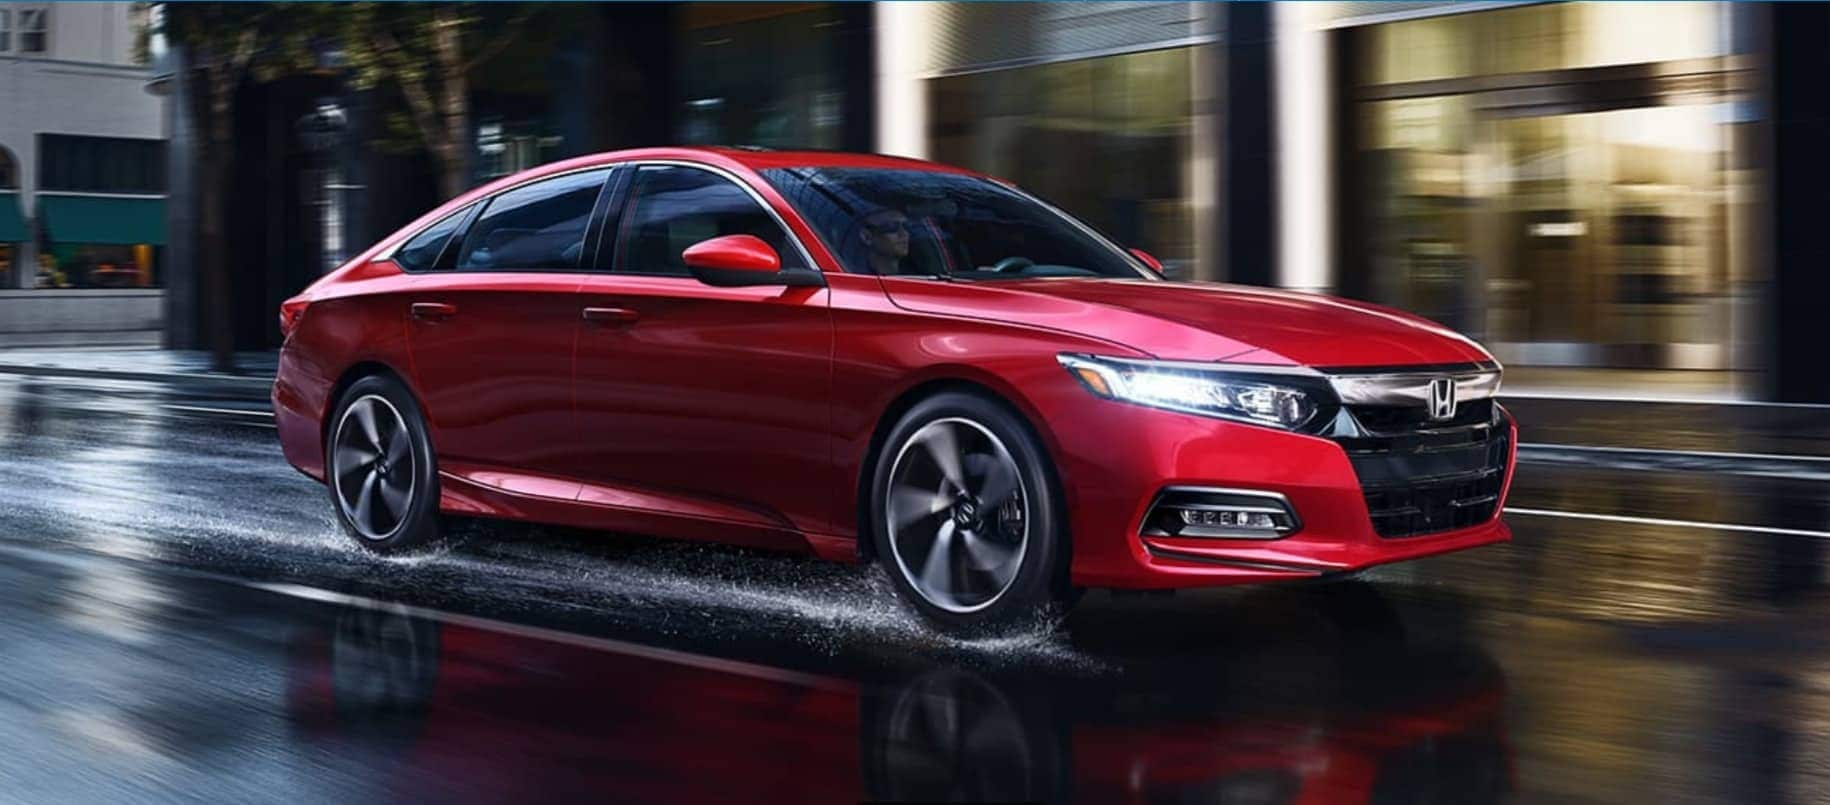 What's new with the 2020 Honda Accord near Denver CO